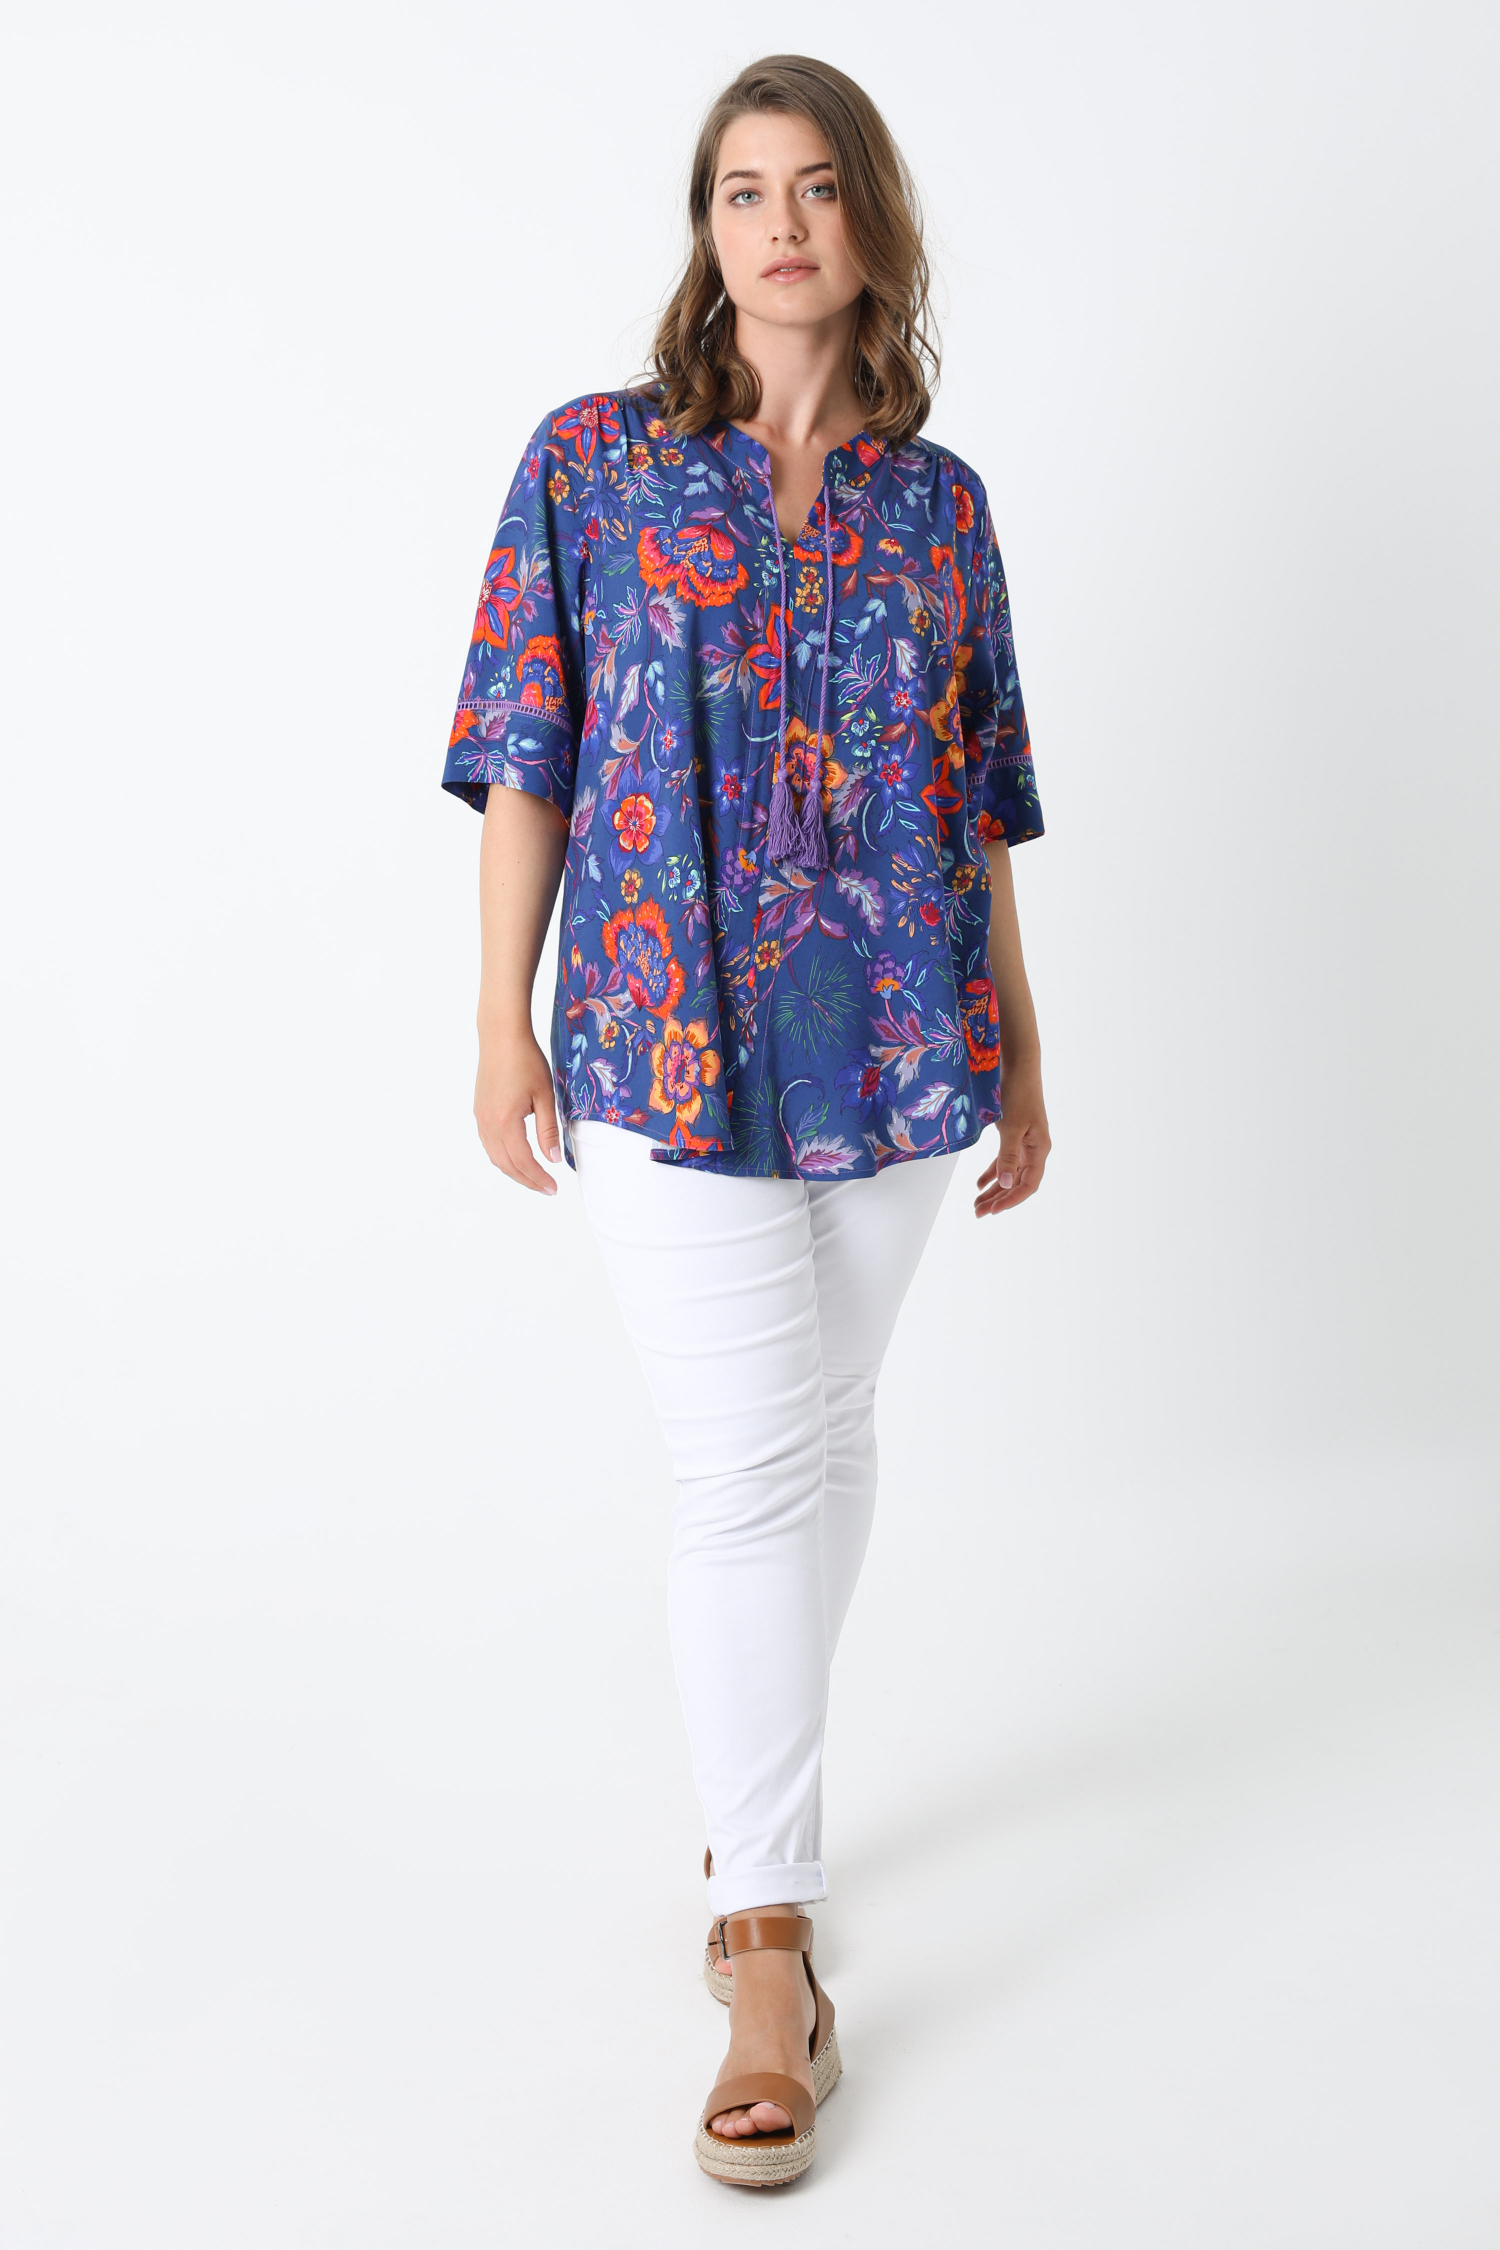 Printed blouse with oeko-tex fabrics (expedition 20/25 June)